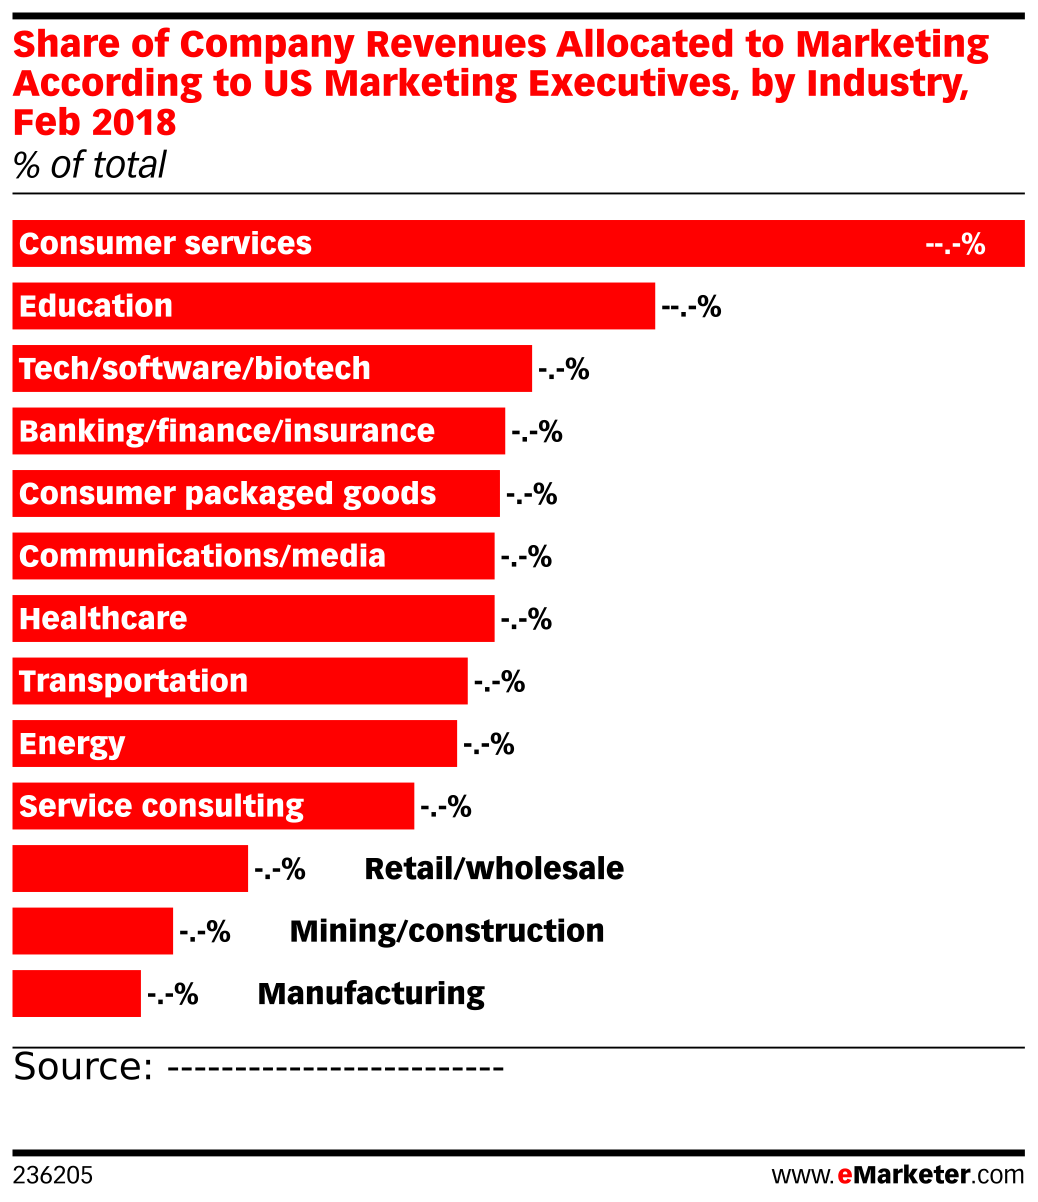 Share of Company Revenues Allocated to Marketing According to US Marketing Executives, by Industry, Feb 2018 (% of total)